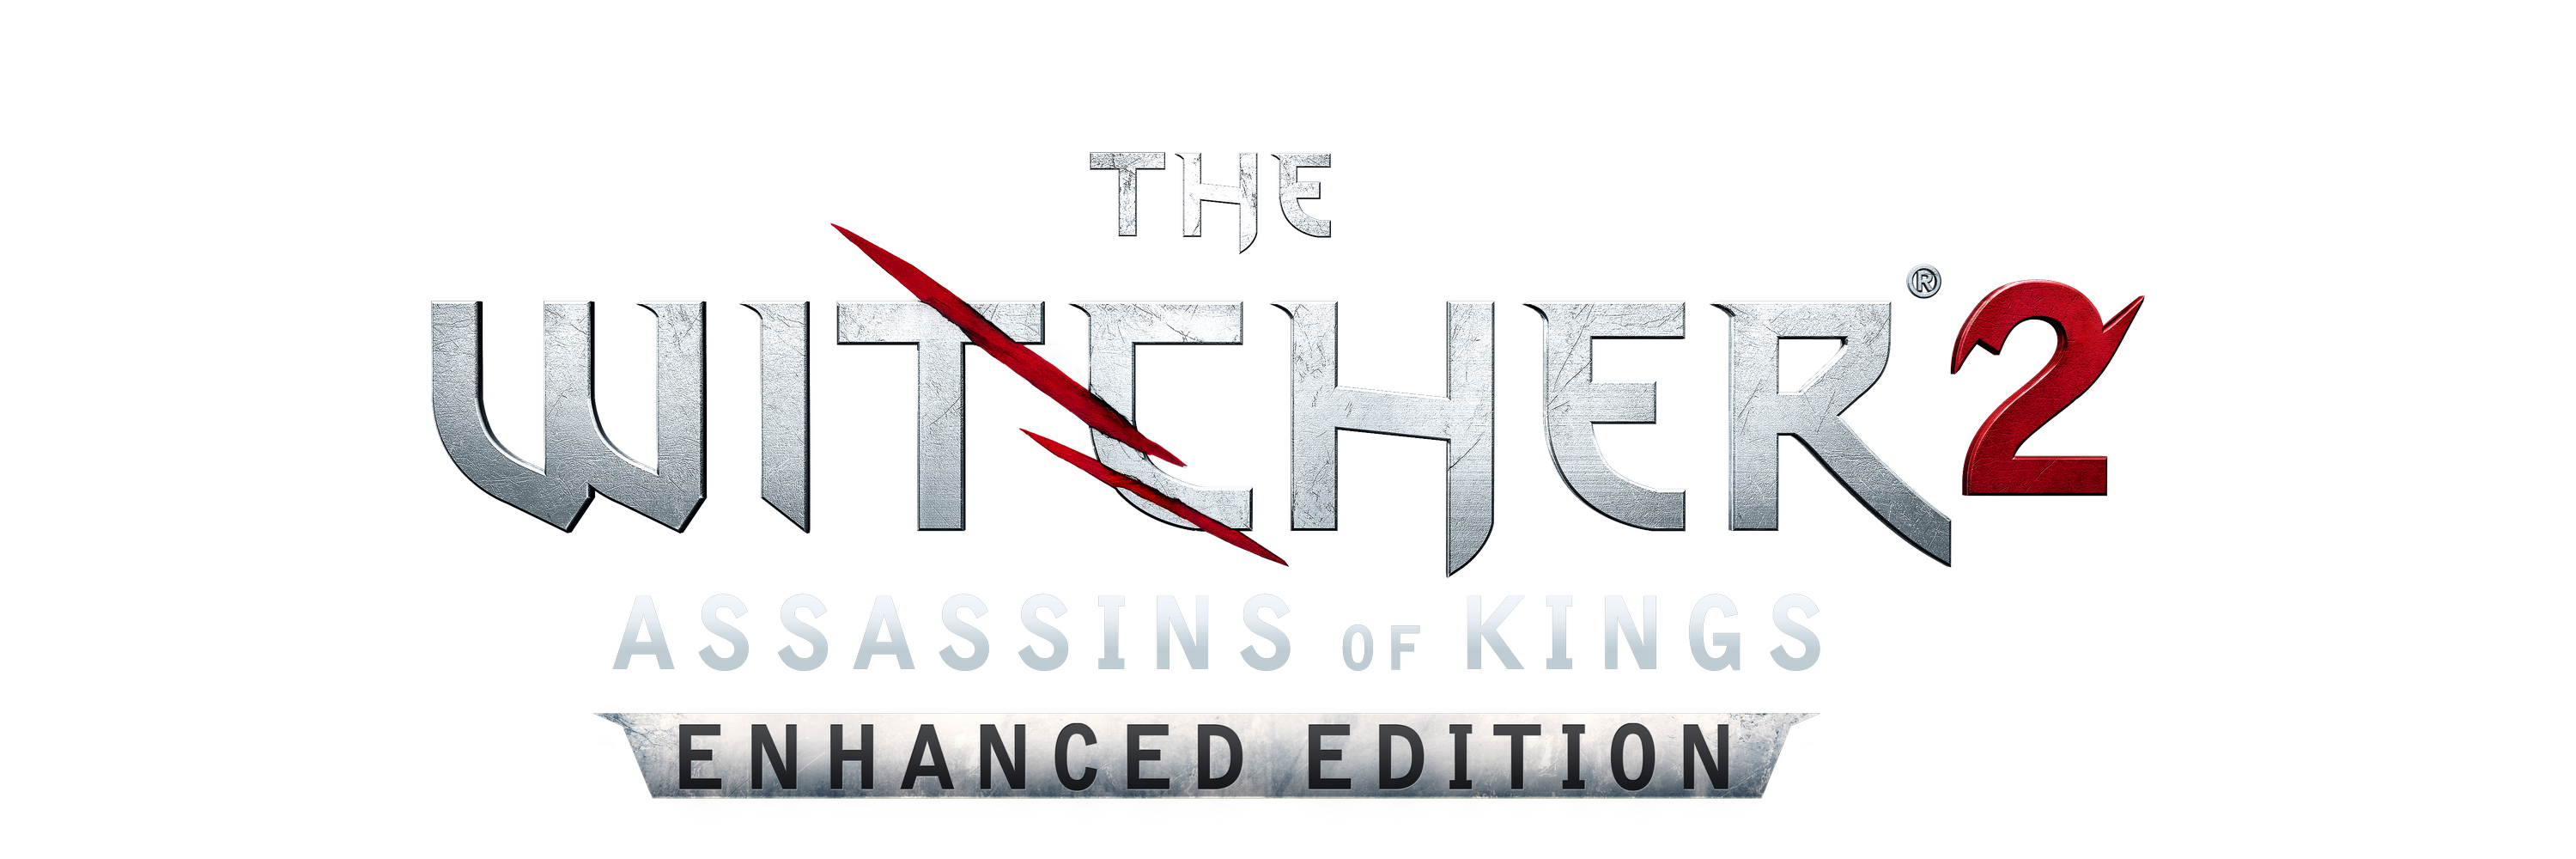 The Witcher 2 Logo Png Image The Witcher Png Images Logo Icons